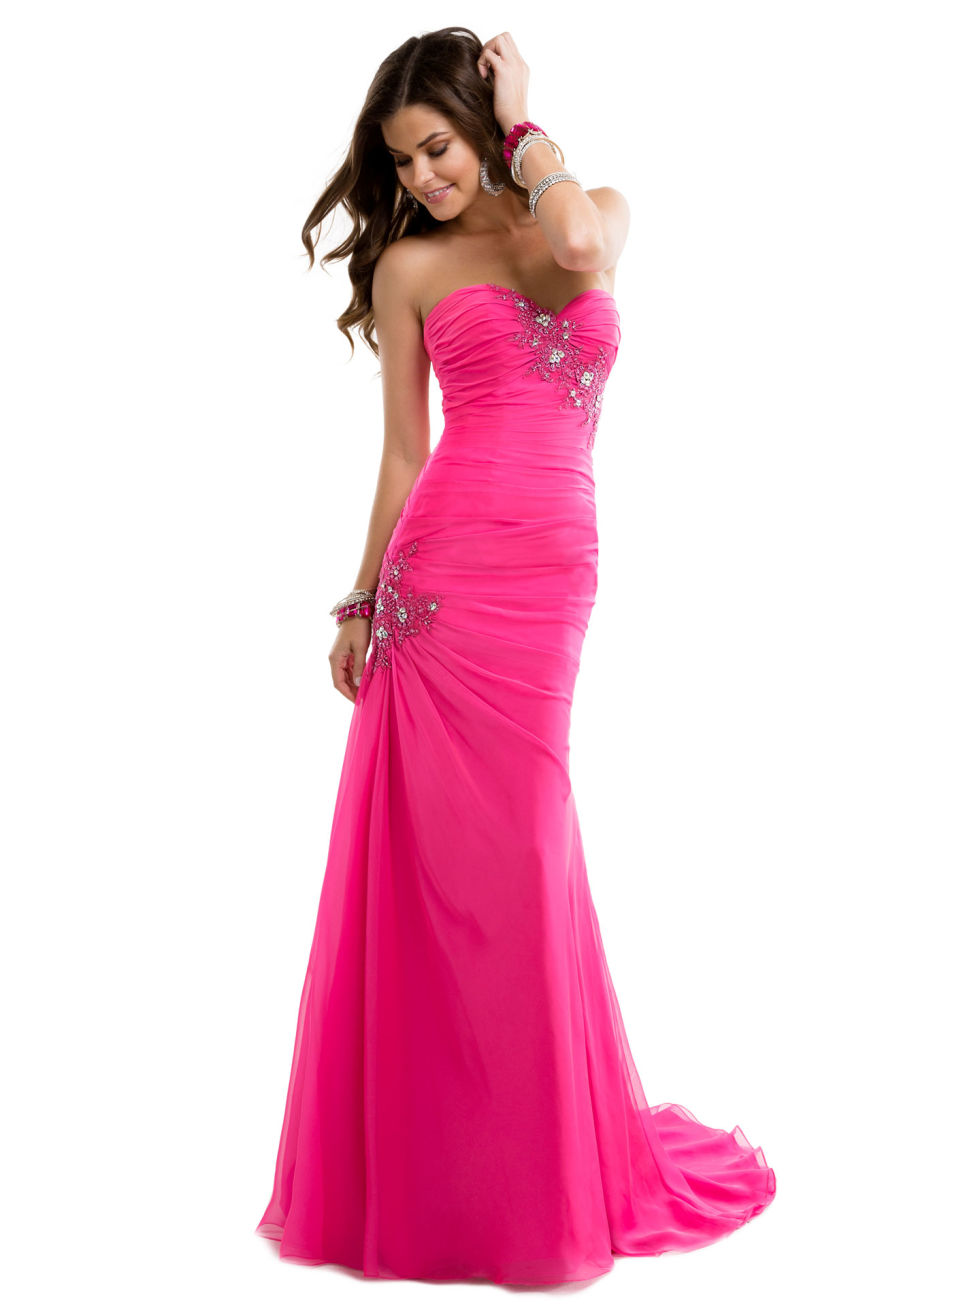 wedding dresses jcpenney jcpenney wedding dresses jcpenney dresses for homecoming